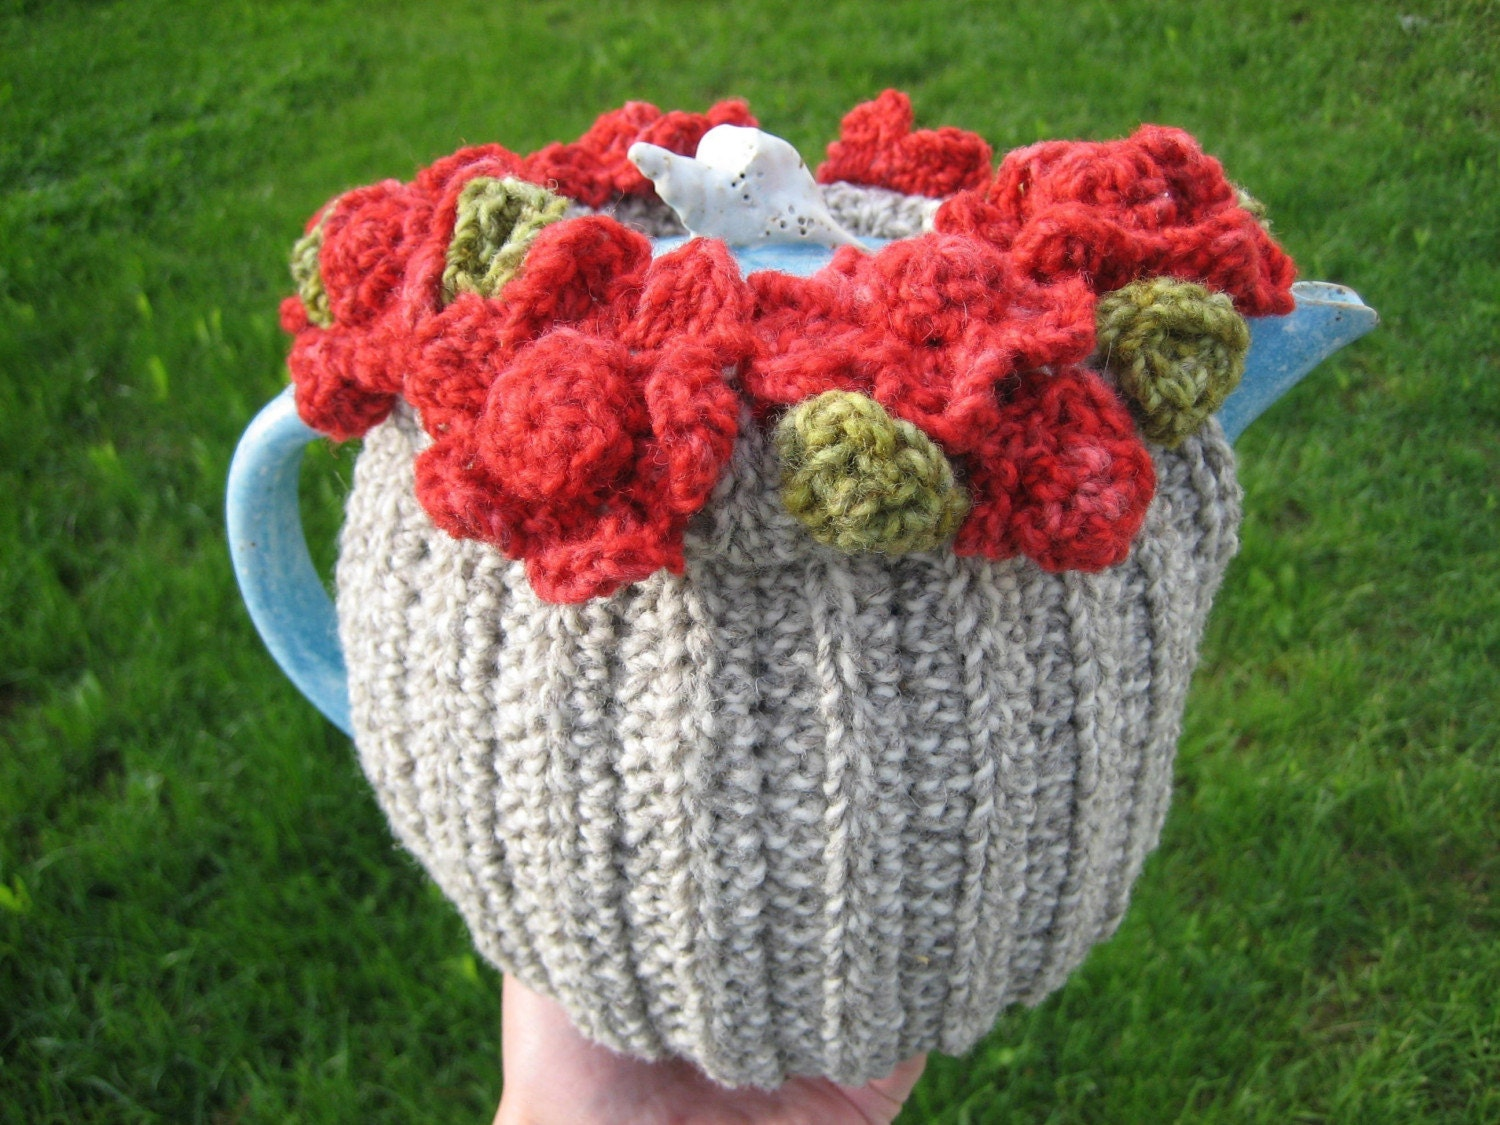 Crochet Patterns — Blogs, Pictures, and more on WordPress